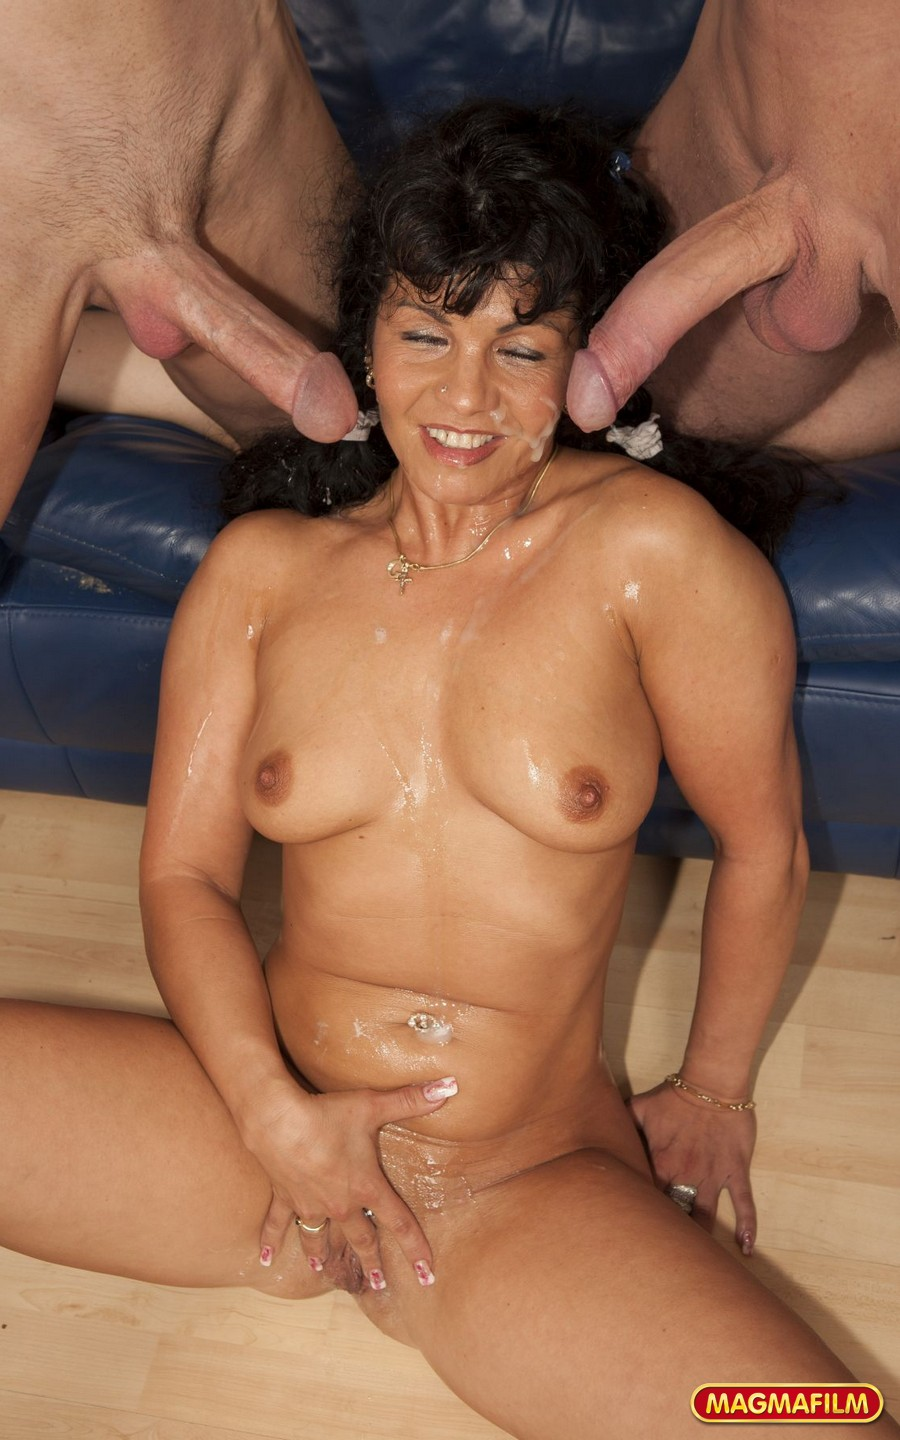 Naked wife, big cock rather valuable